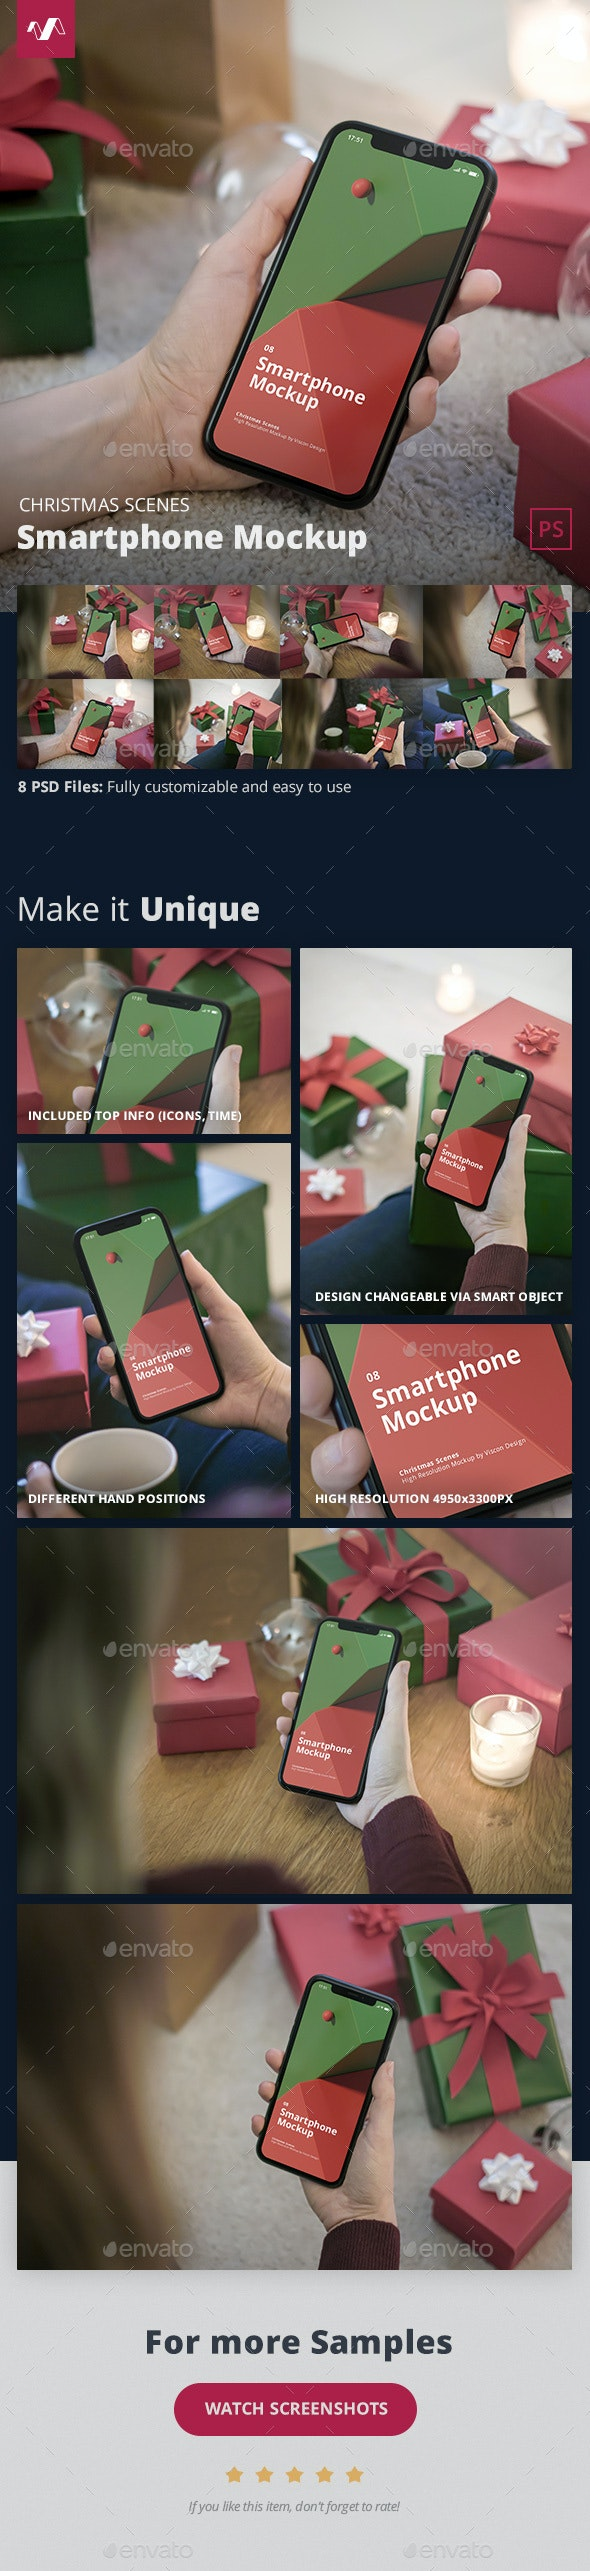 Phone Mockup Christmas Scenes - Mobile Displays